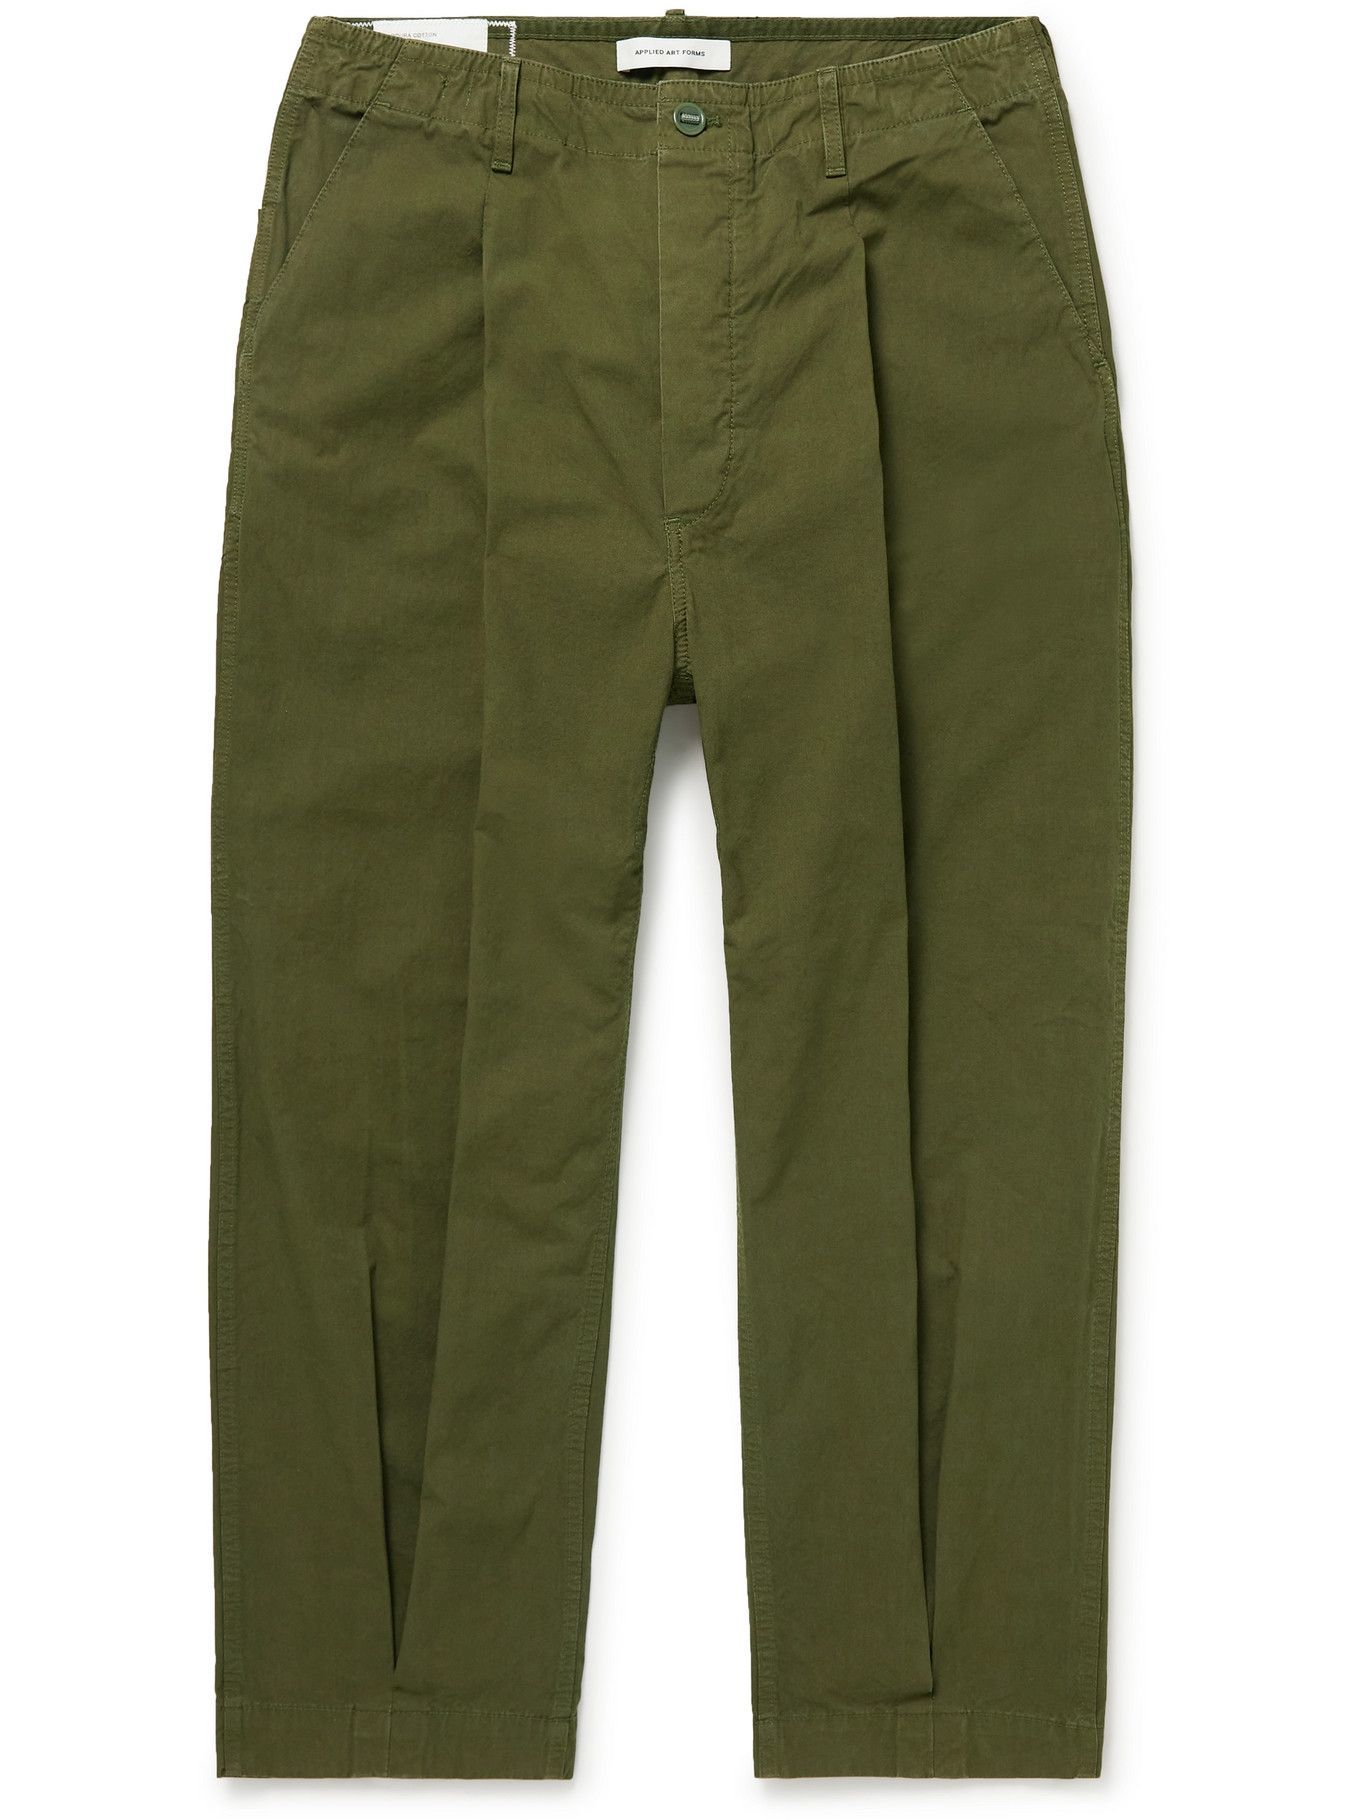 Photo: Applied Art Forms - DM1-1 Tapered Pleated Cotton and CORDURA-Blend Trousers - Green